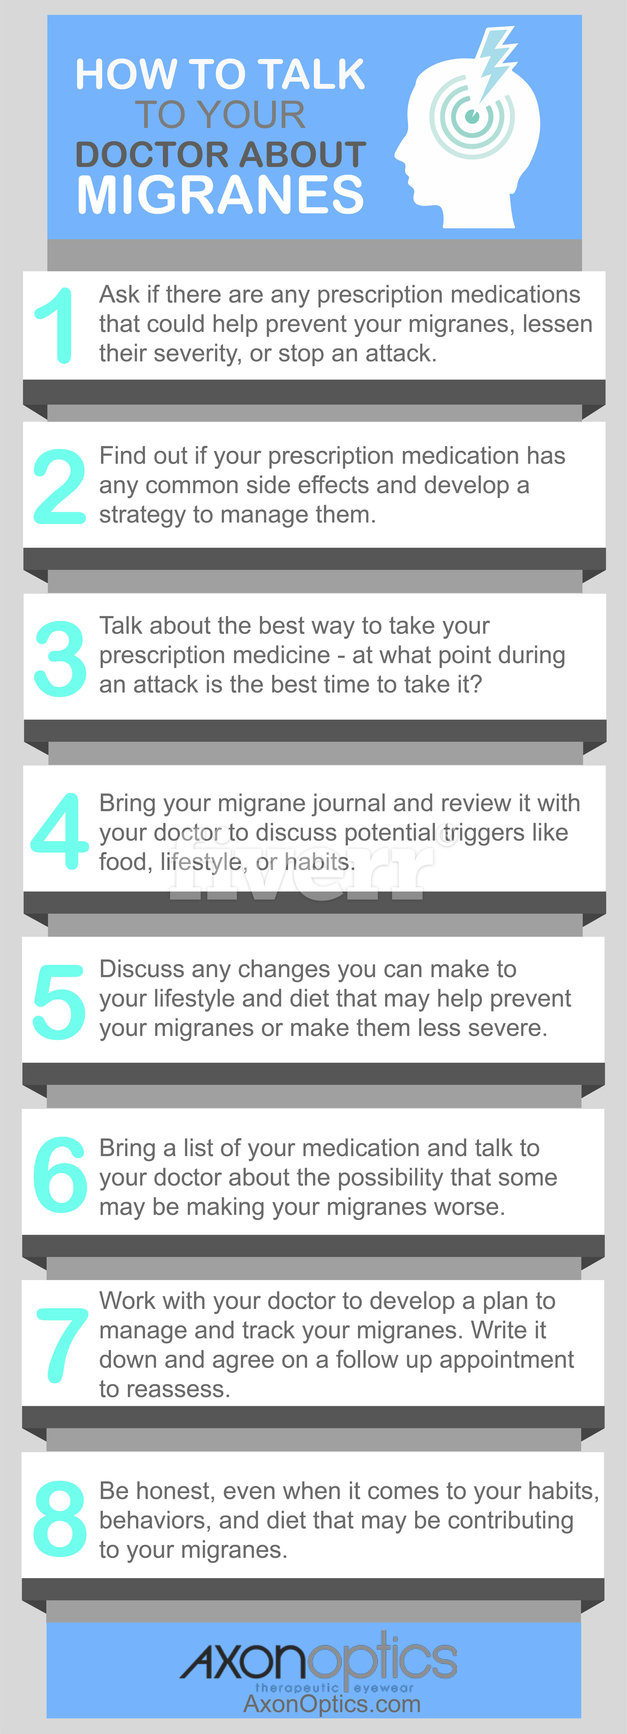 How to talk to your doctor about migraines and migraine medication